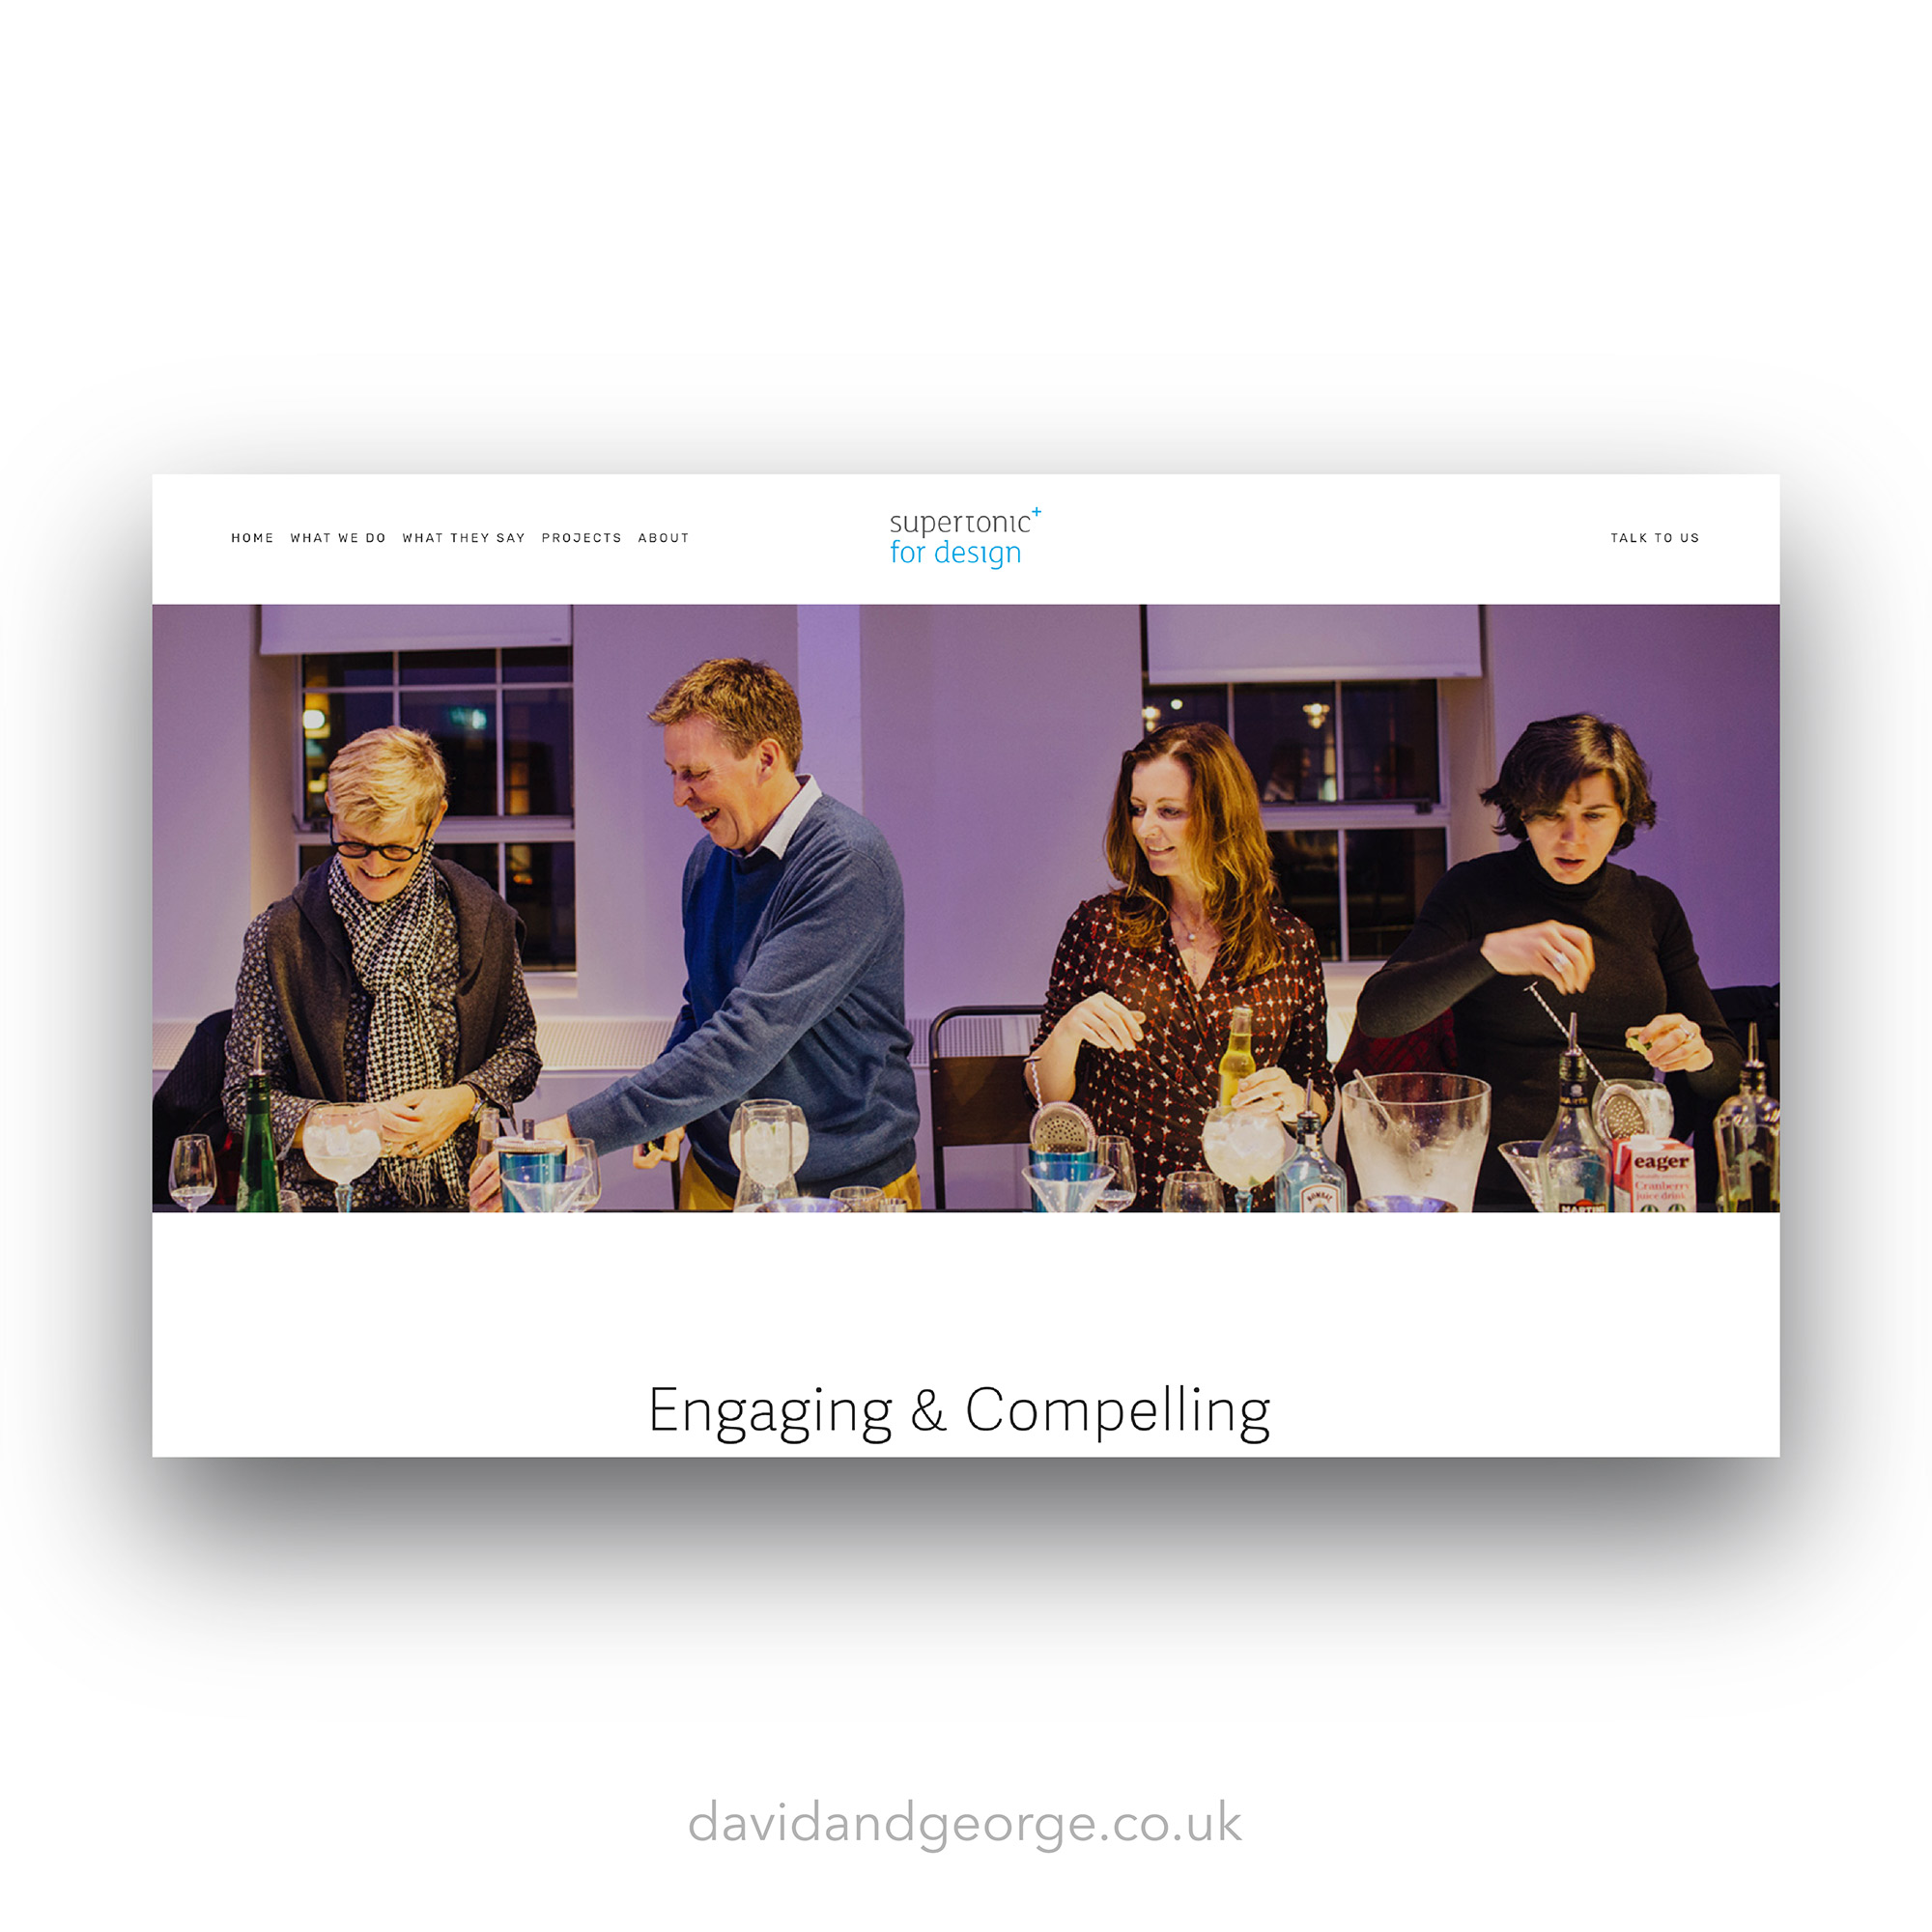 squarespace-website-design-london-edinburgh-uk-david-and-george-supertonic-top-interior-design-website-examples.jpg